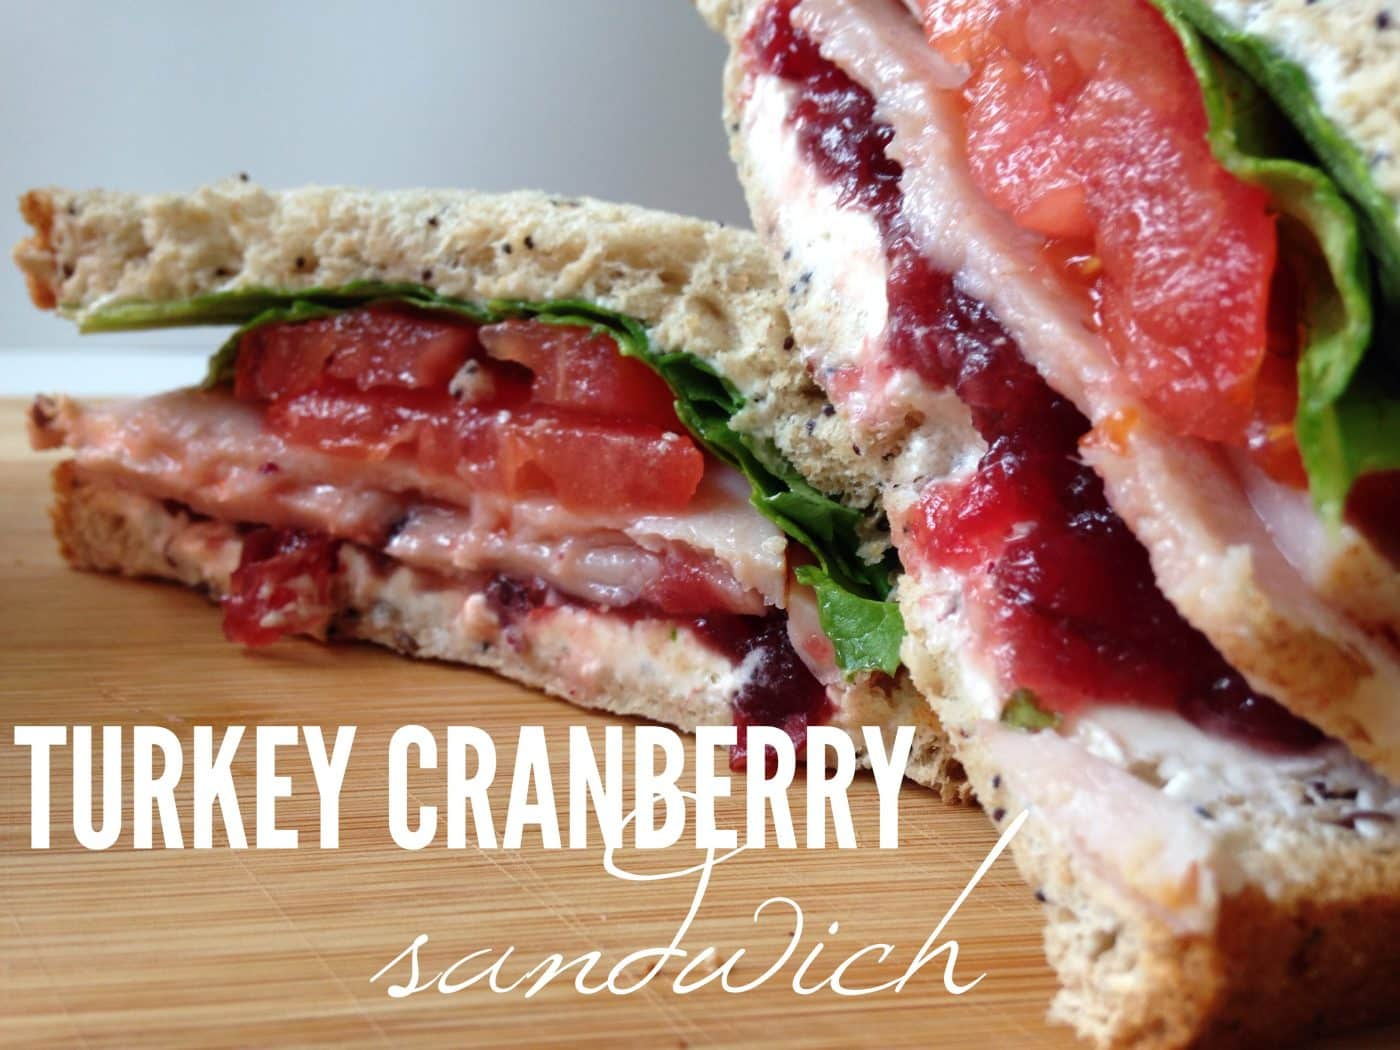 Turkey Cranberry Sandwich Recipe - Hello Nature